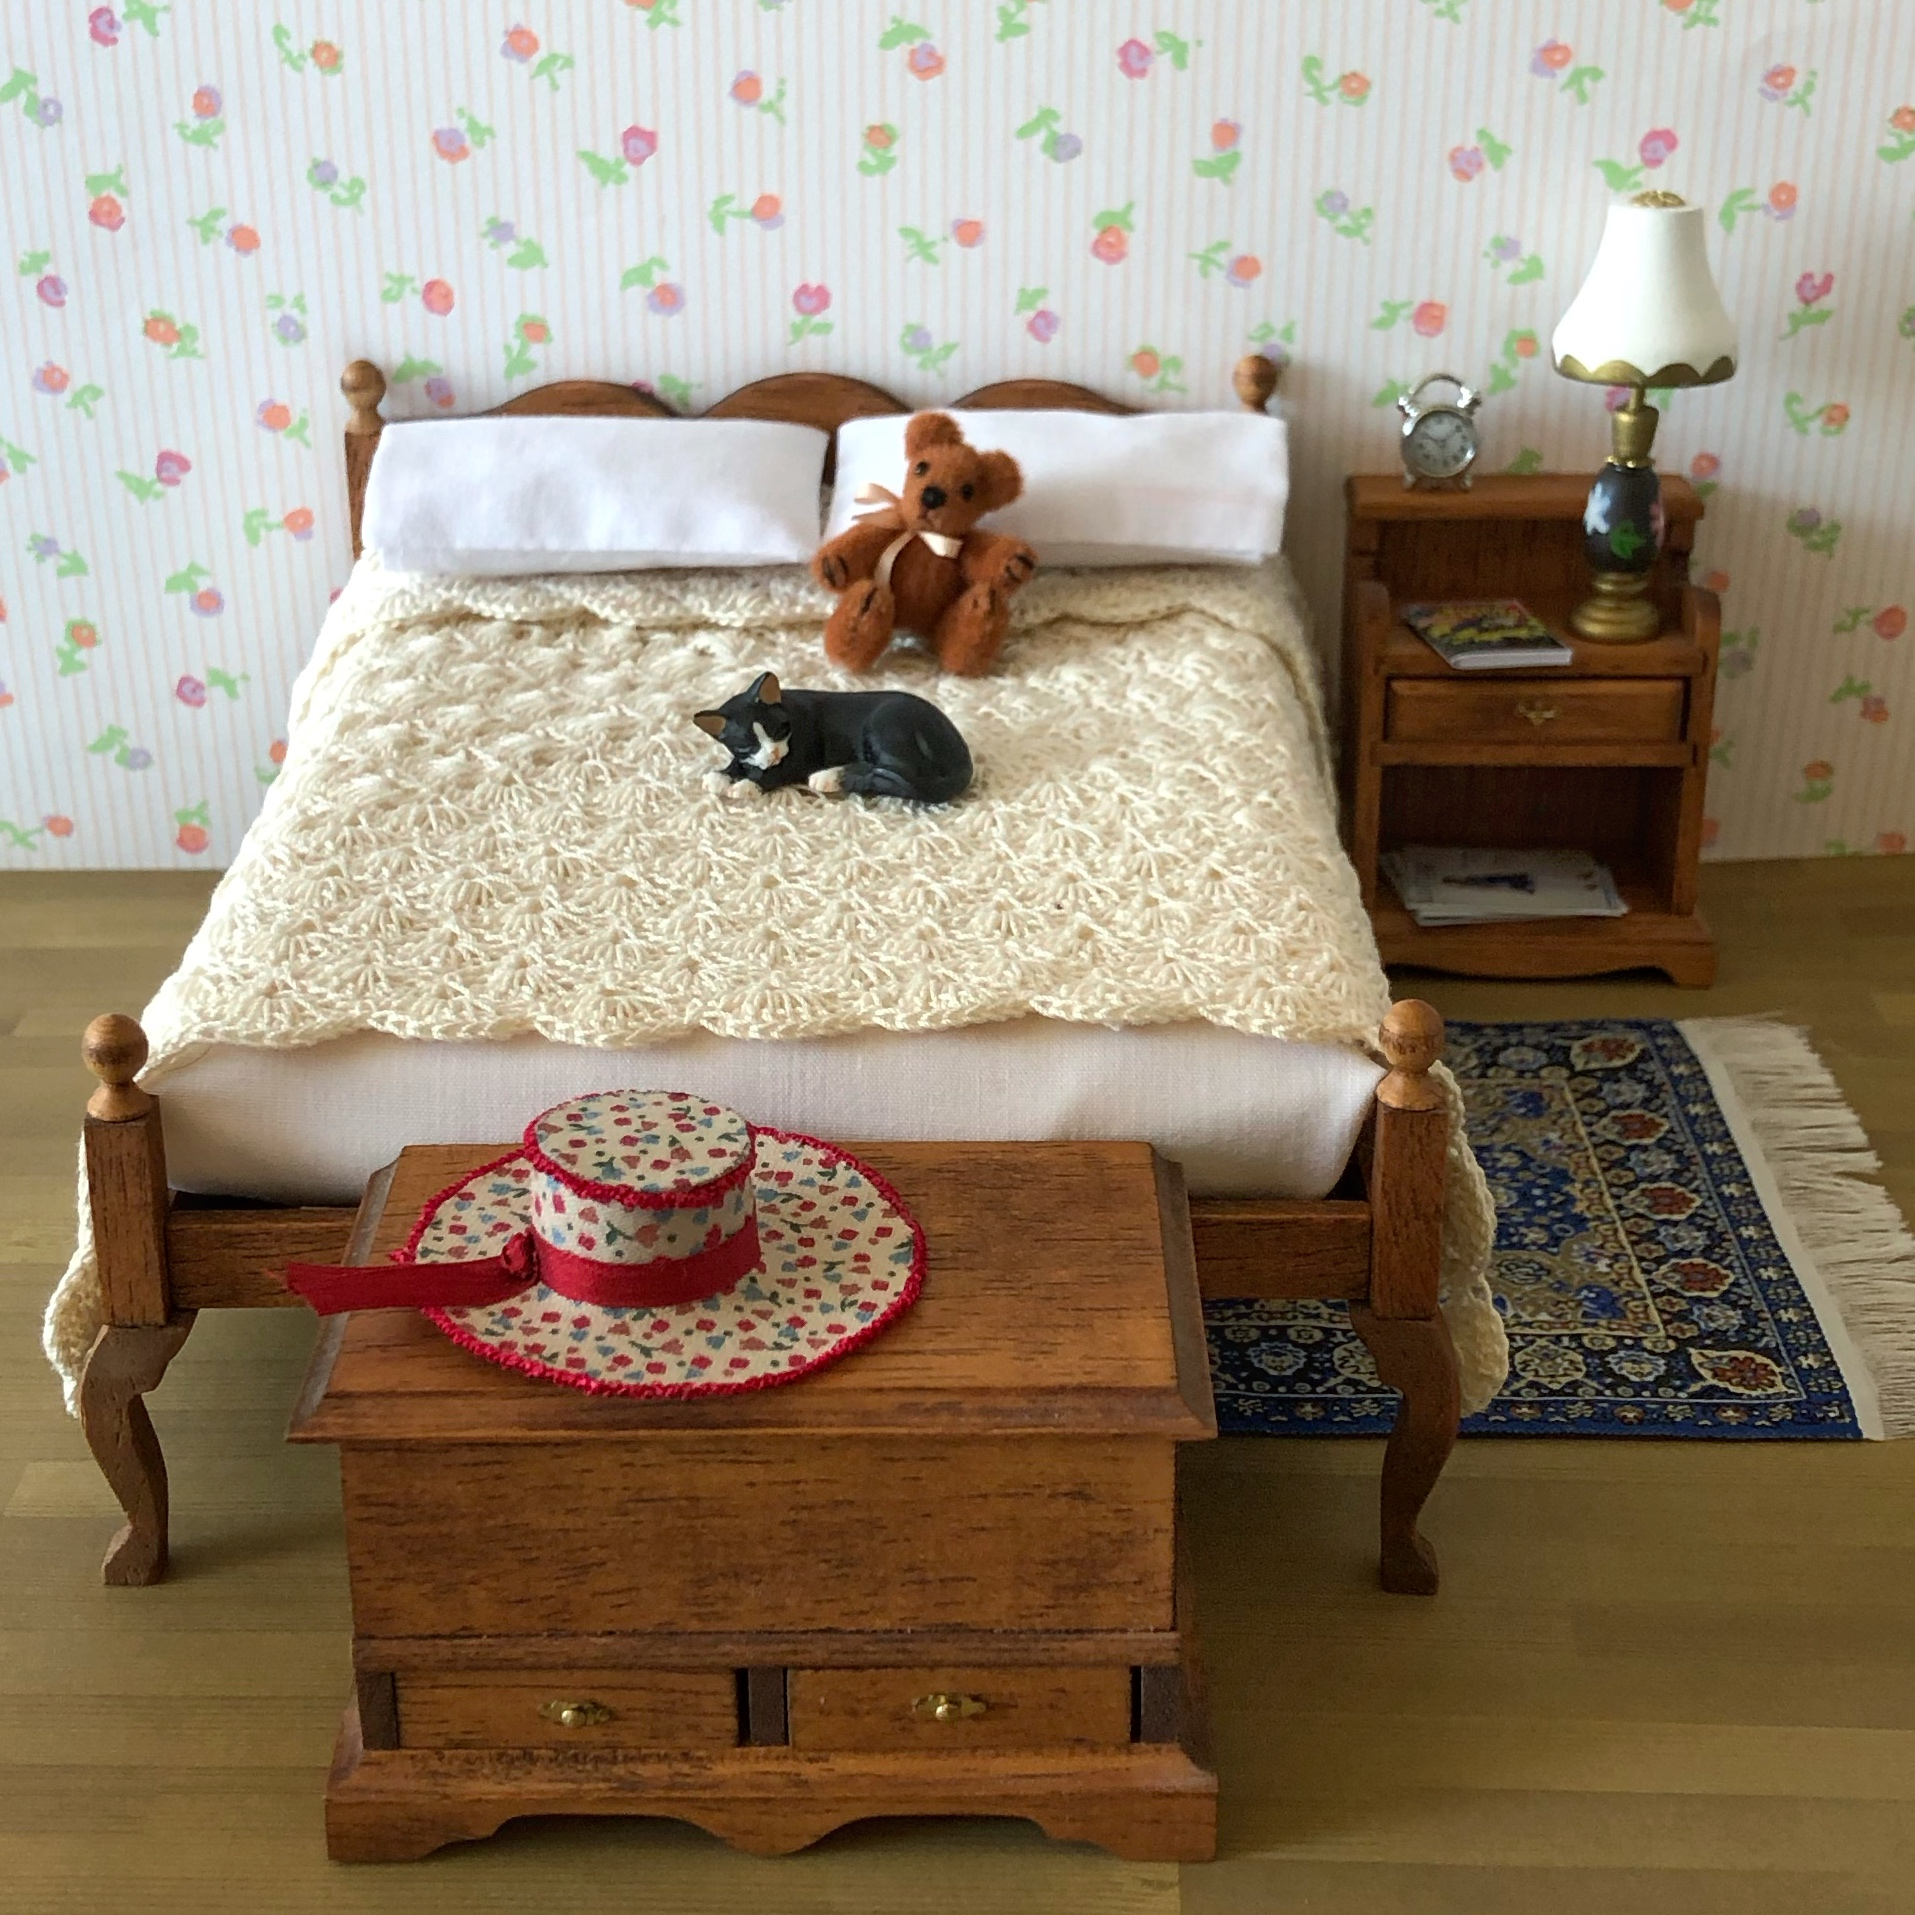 crocheted_bedspread.jpeg